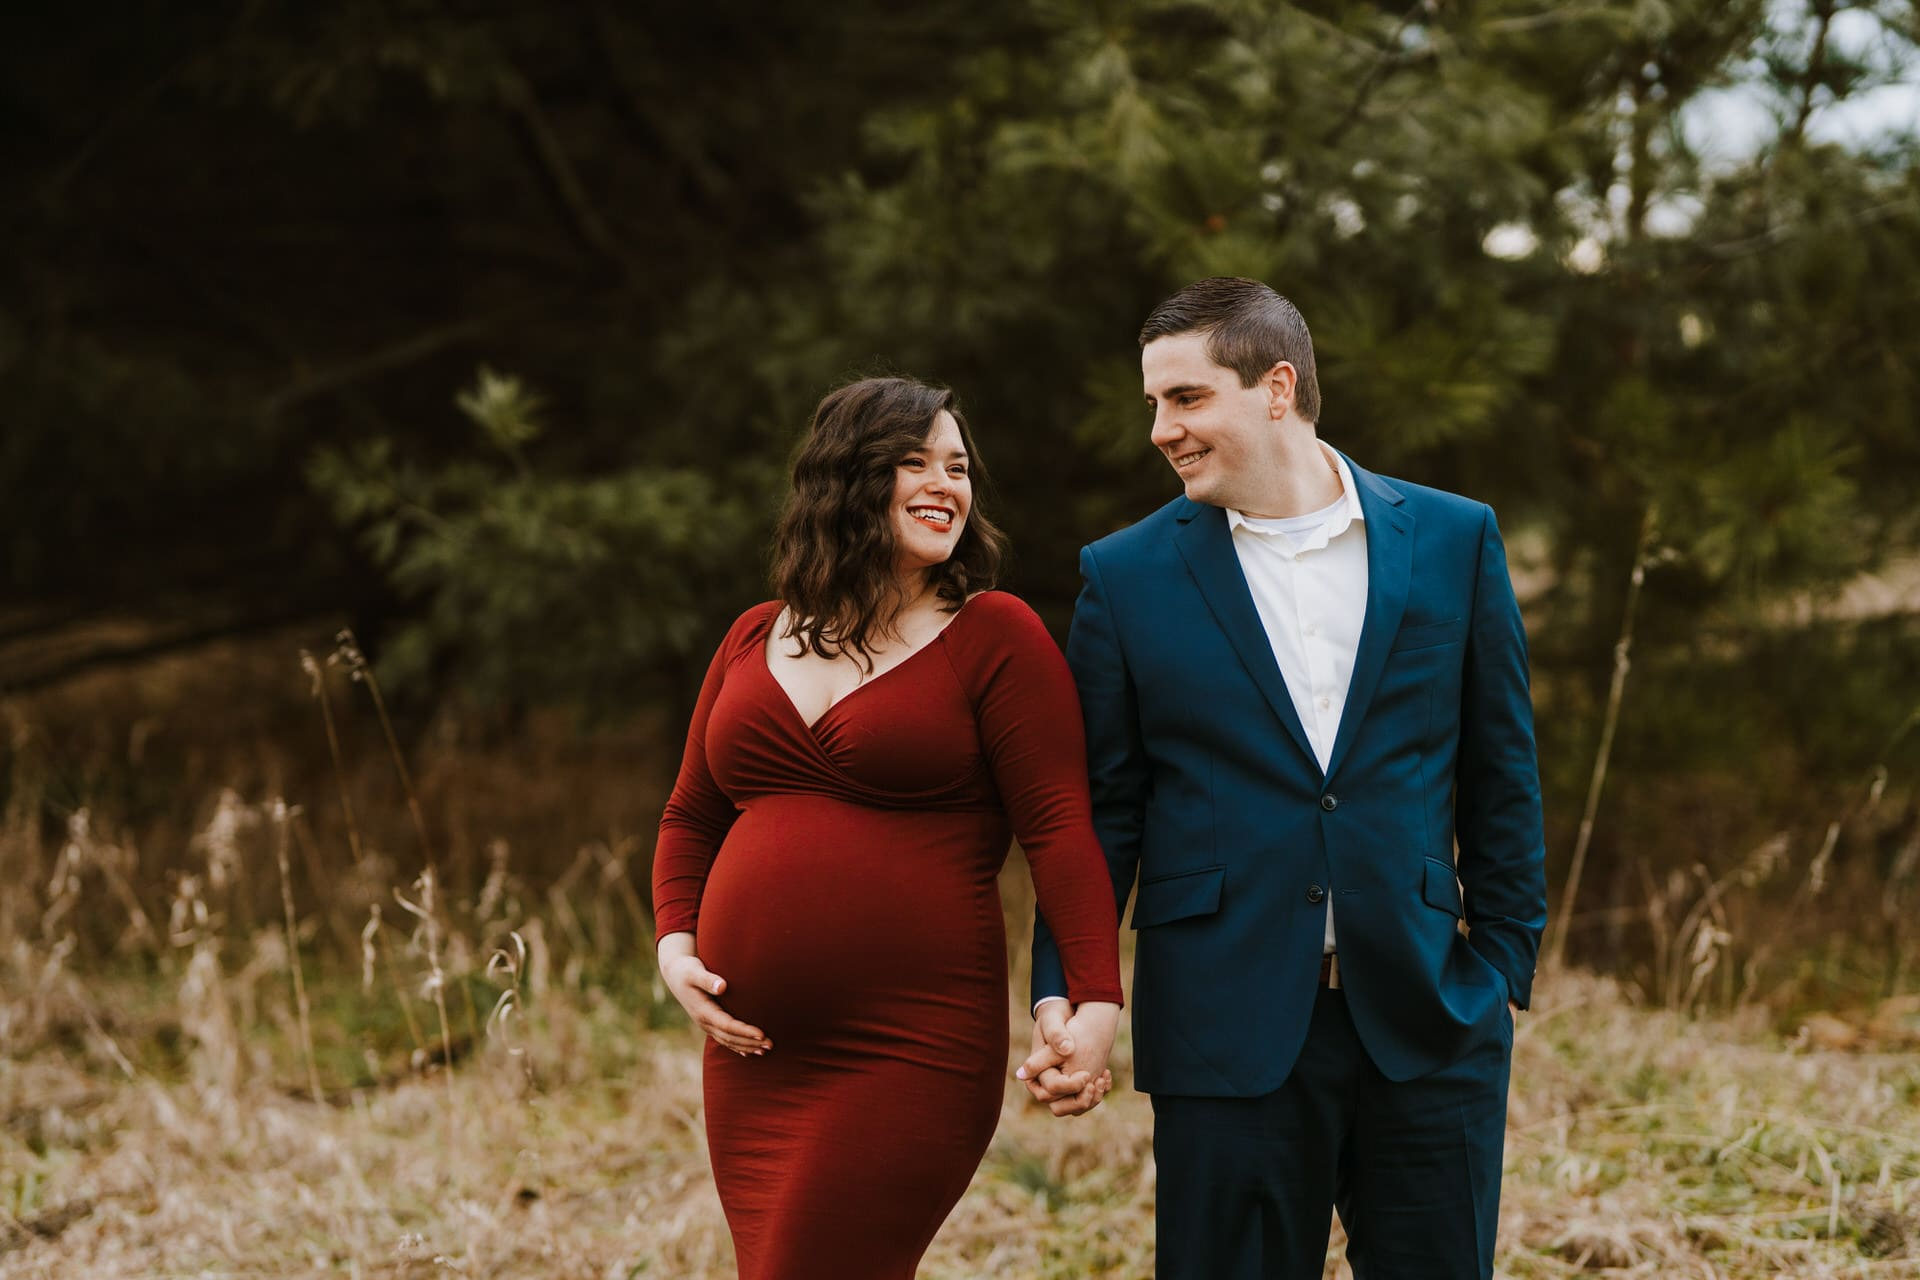 northville maternity photographer